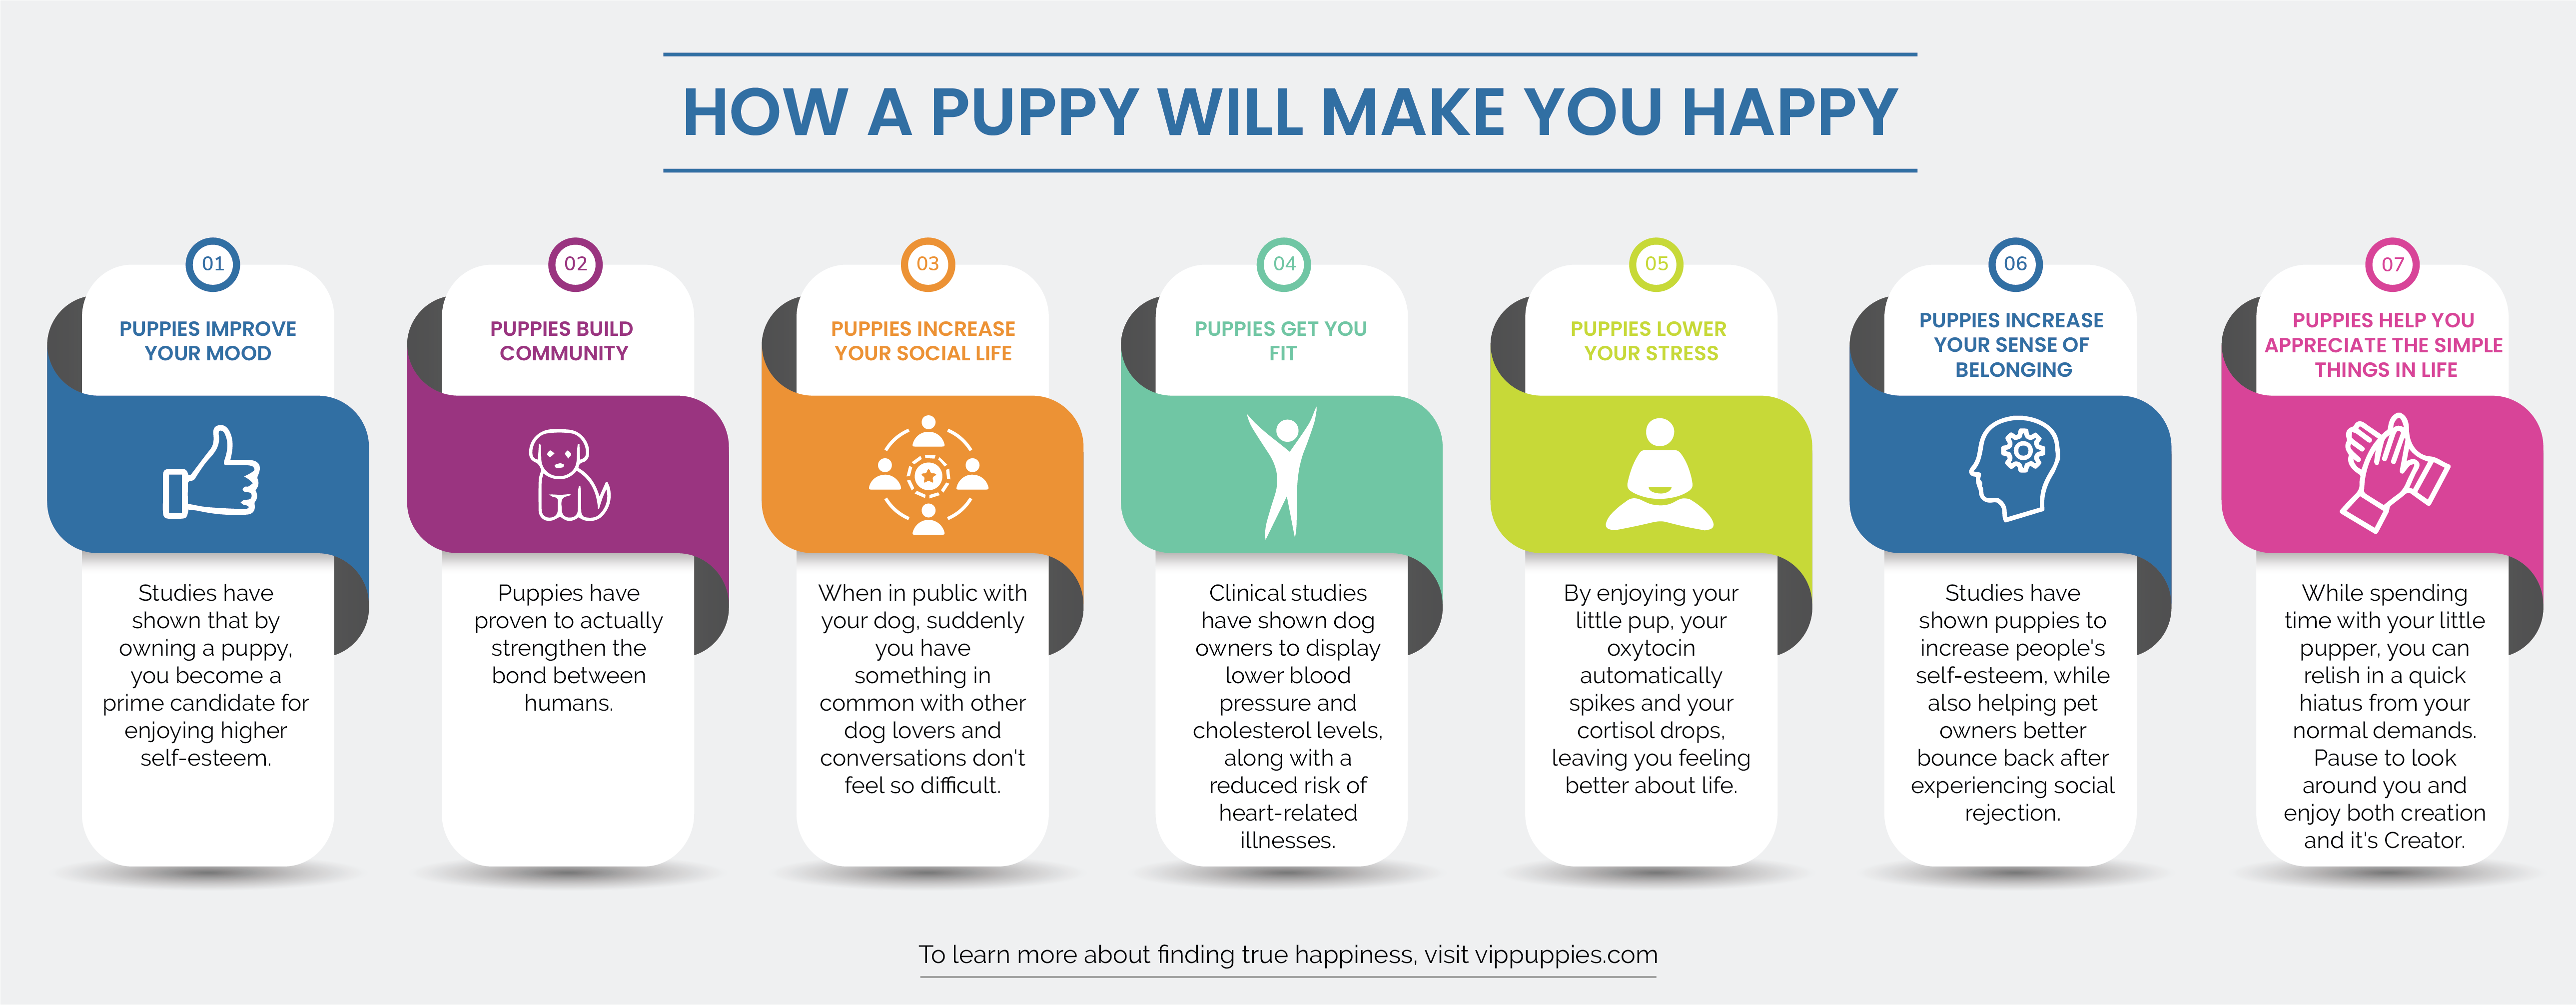 How a puppy will make you happy infographic